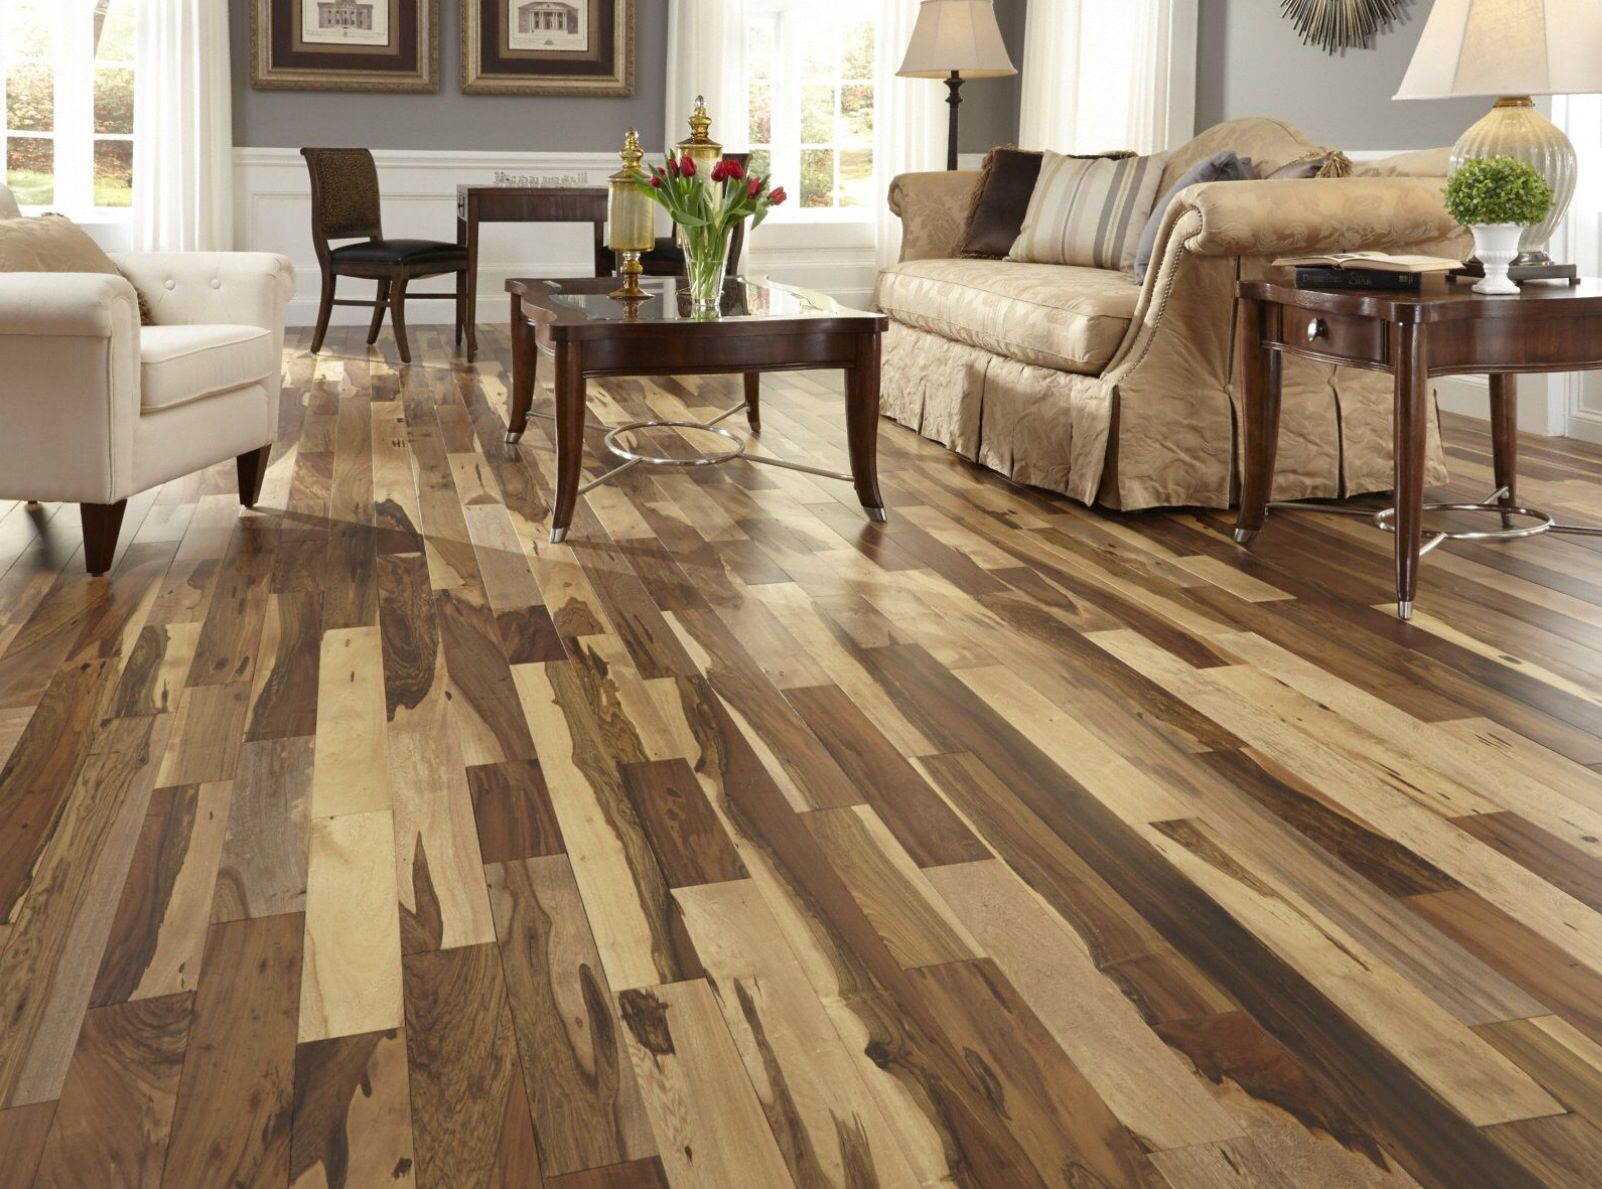 Brazilian Pecan Hardwood Flooring Absolutely Beautiful Farmhouse Flooring Floor Design Bamboo Flooring